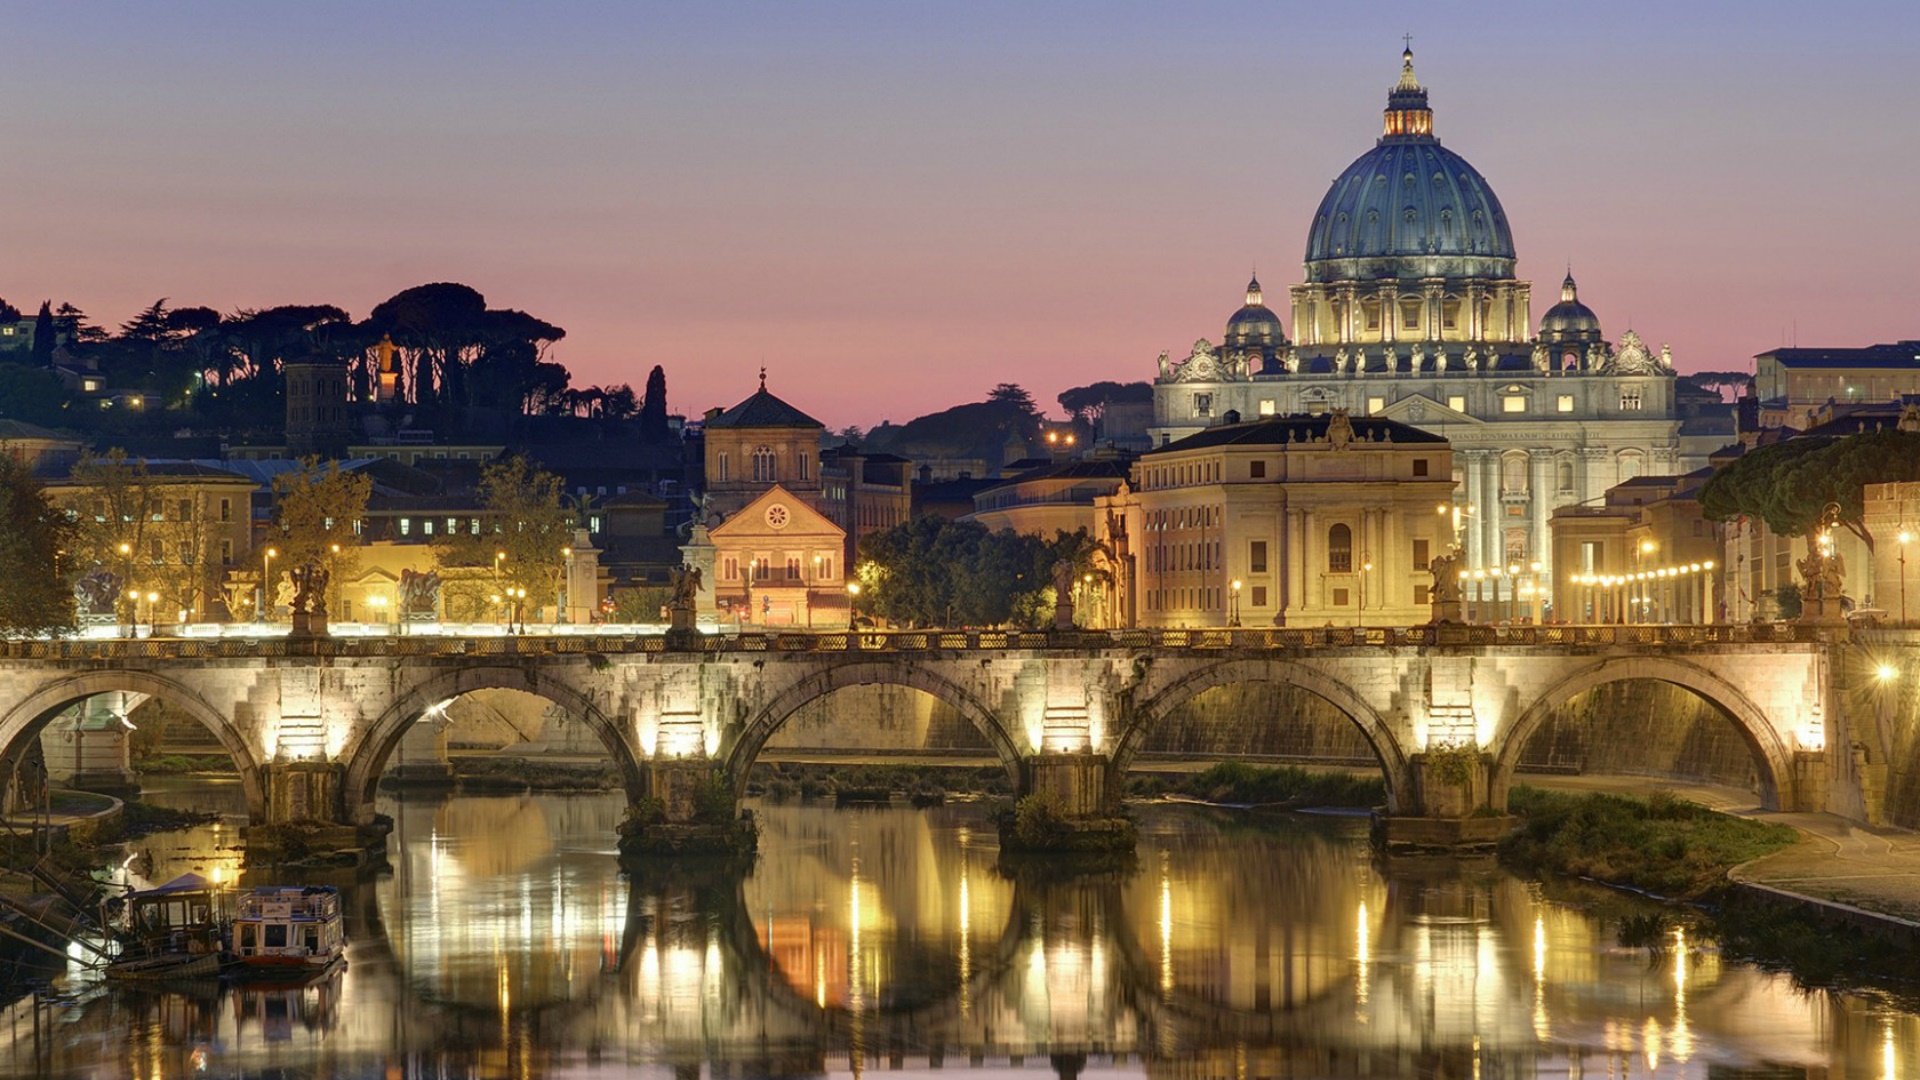 St. Angelo Bridge wallpaper